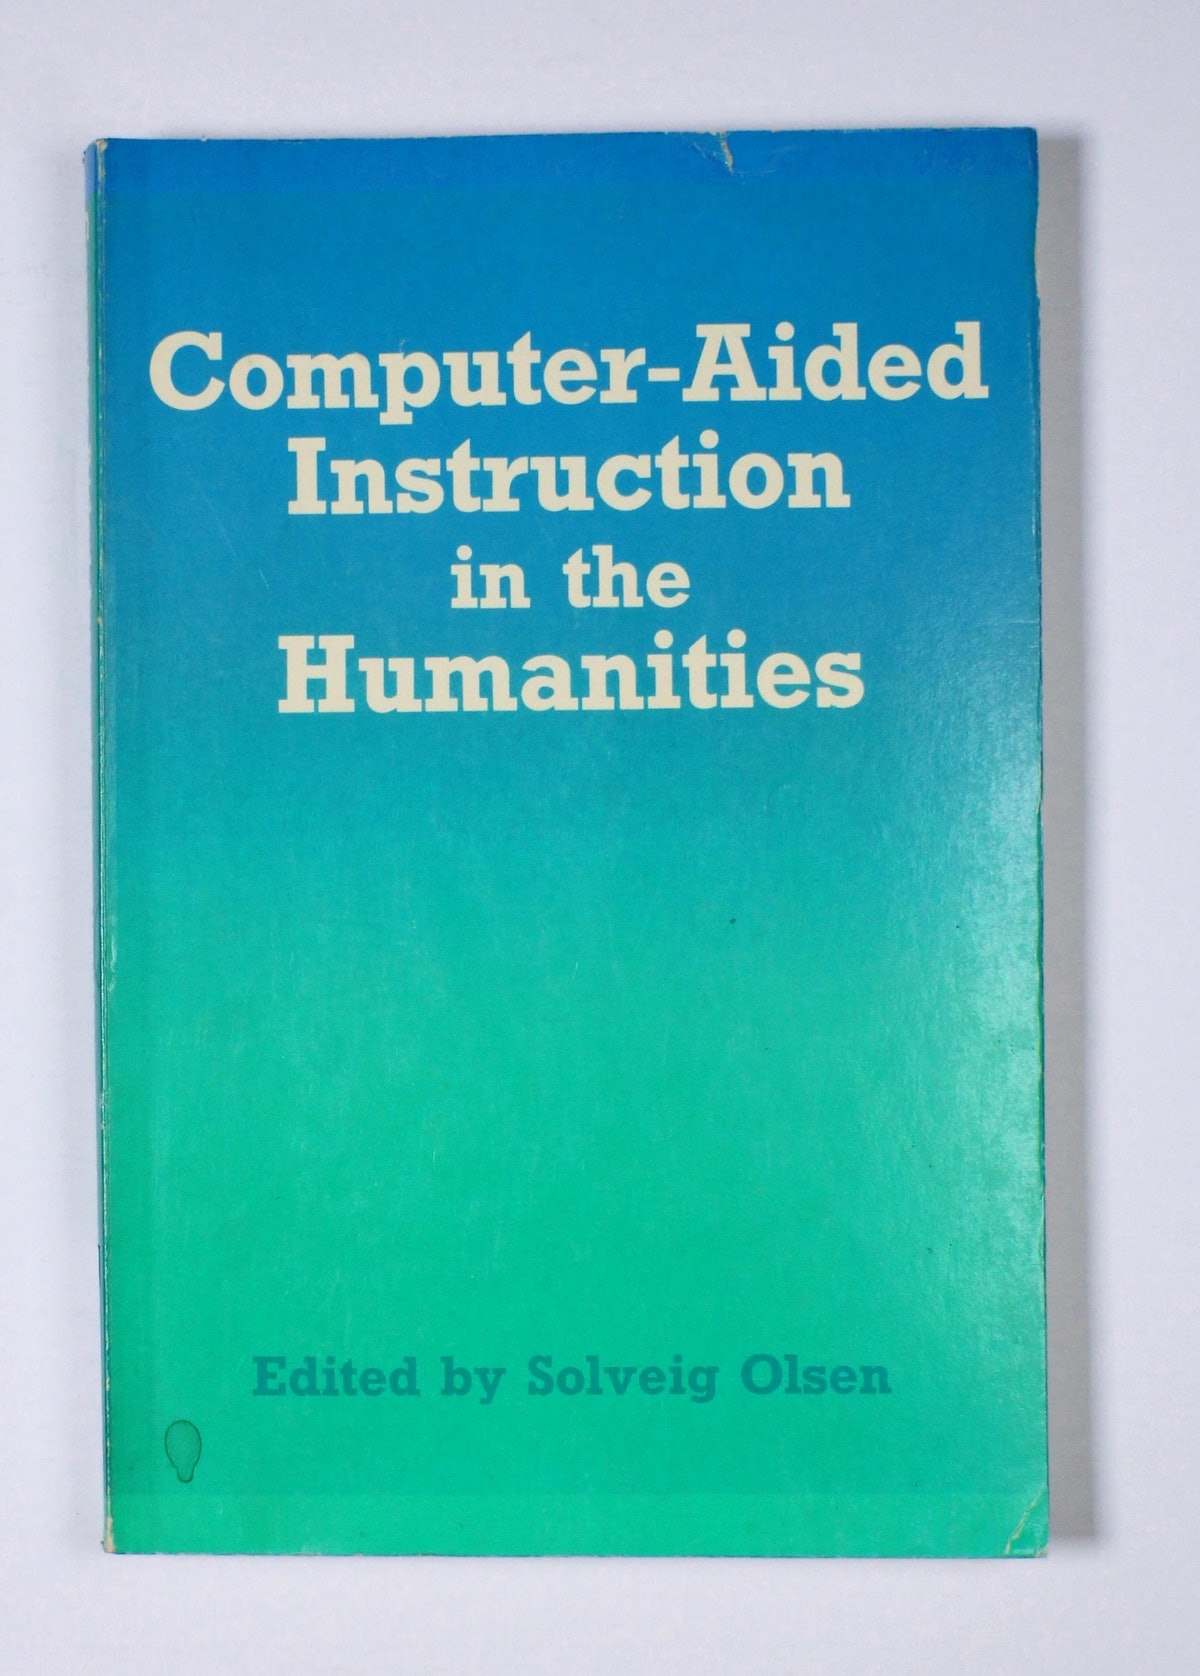 Computer-Aided Instruction in the Humanities